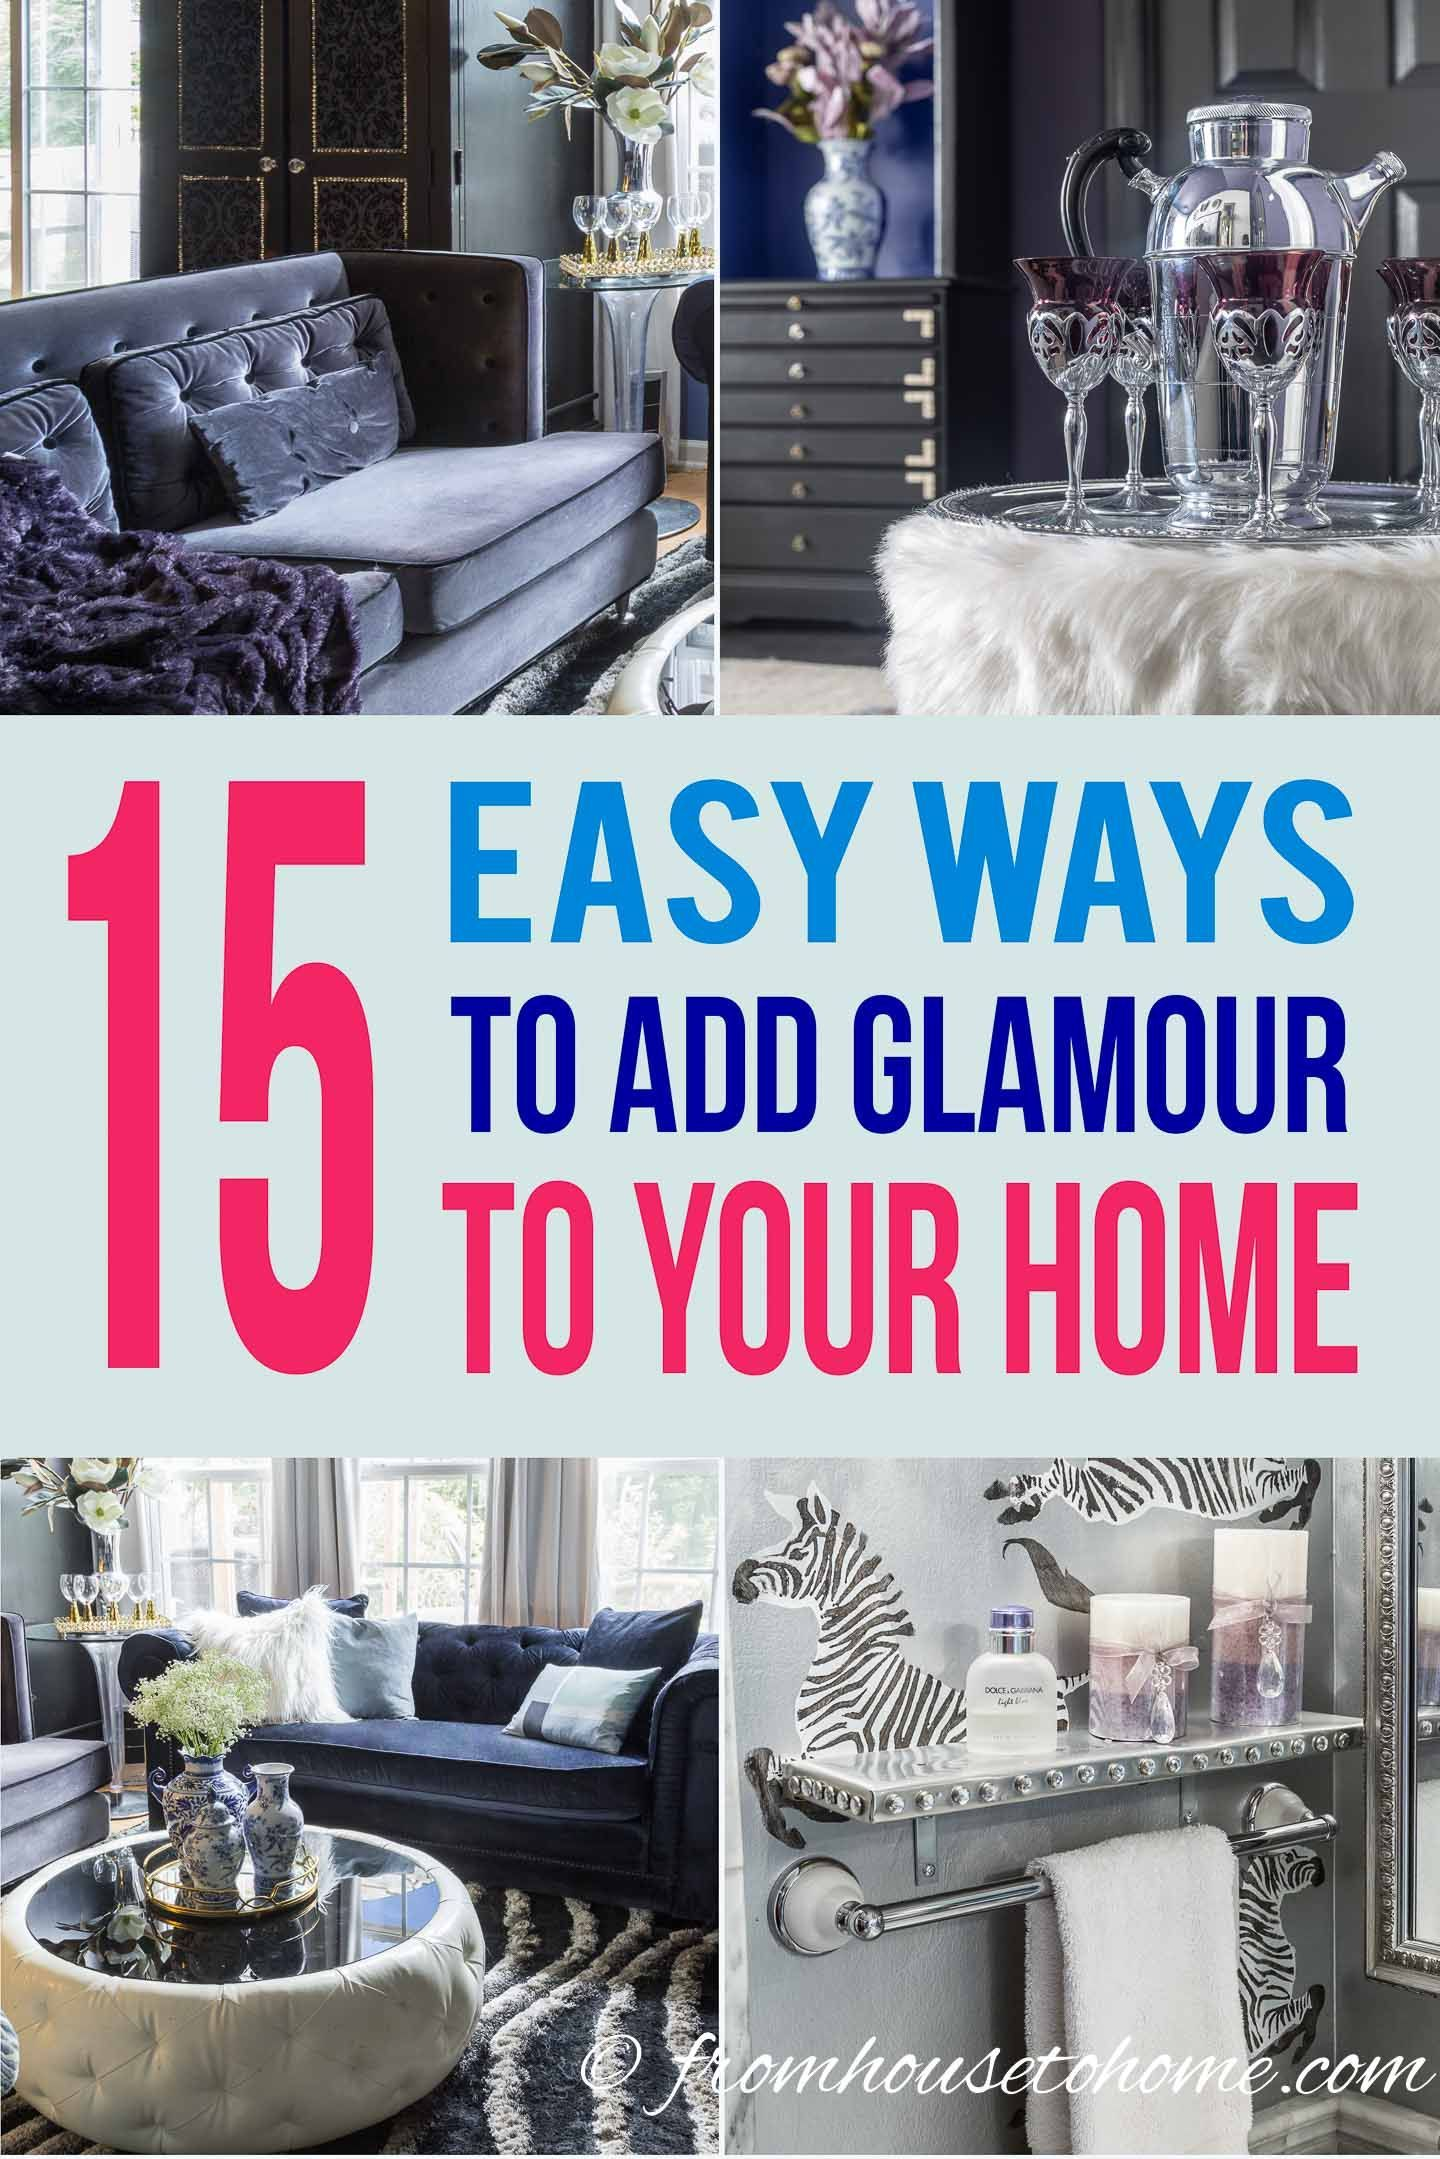 Glam Decorating Ideas 15 Easy Ways To Add Glamour To Your Home Glamour Decor Glamorous Decor Glam Decor